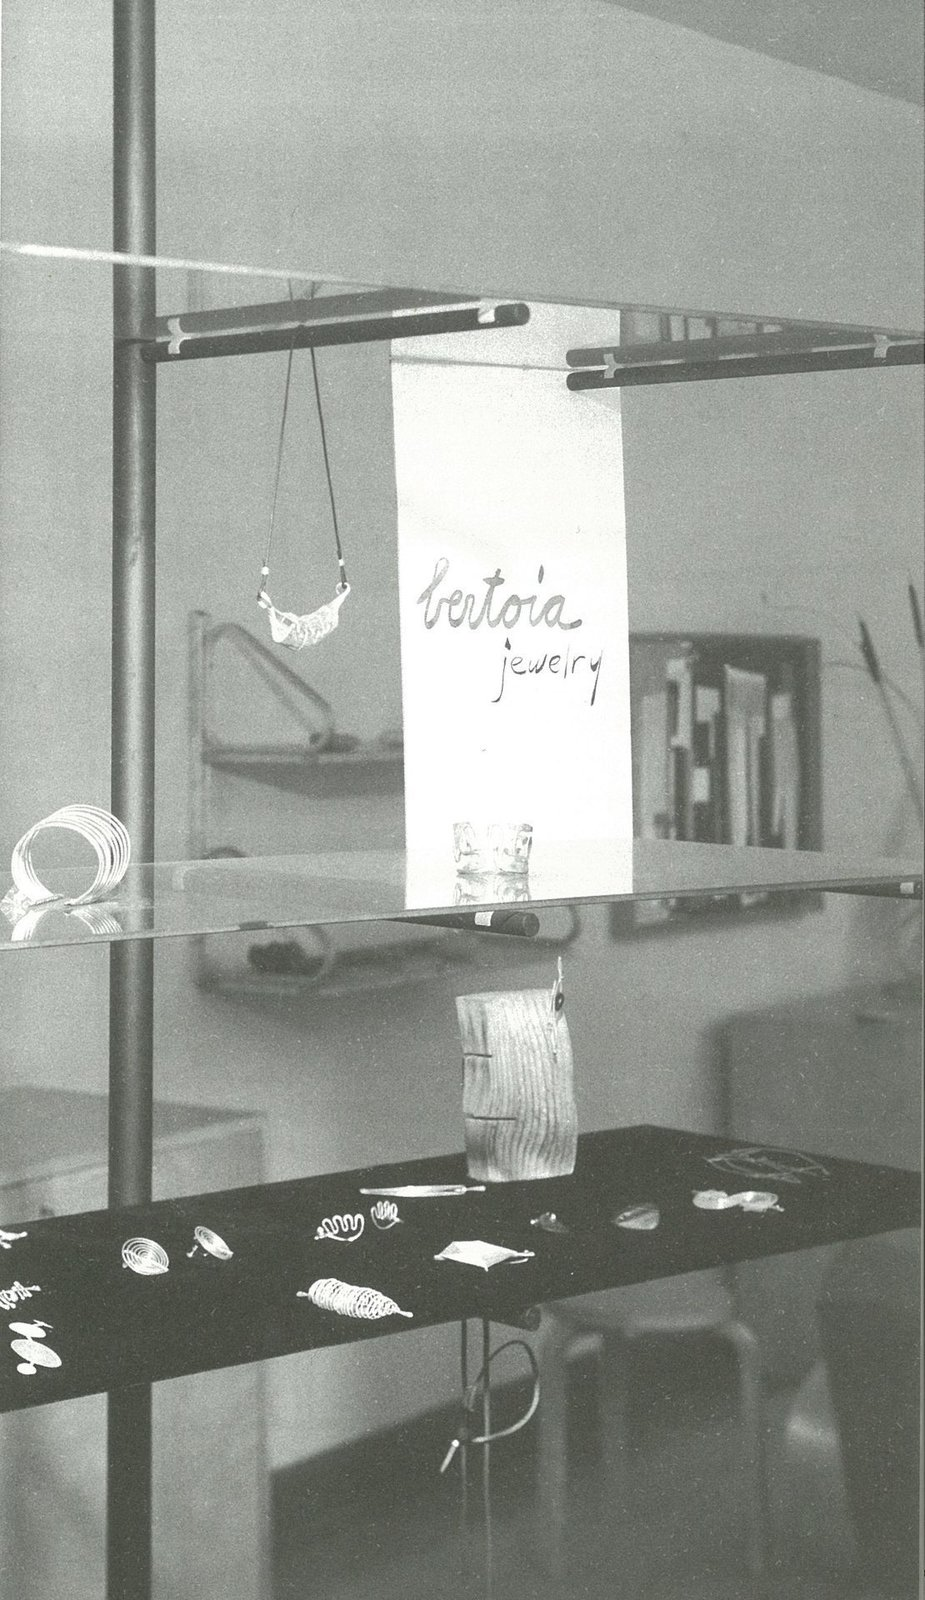 Making do: Harry Weese designed open shelving of floating glass and steel poles to display Bertoia jewelry in the early 1950s  Photo 12 of 21 in How American Modernism Came to the Mountains